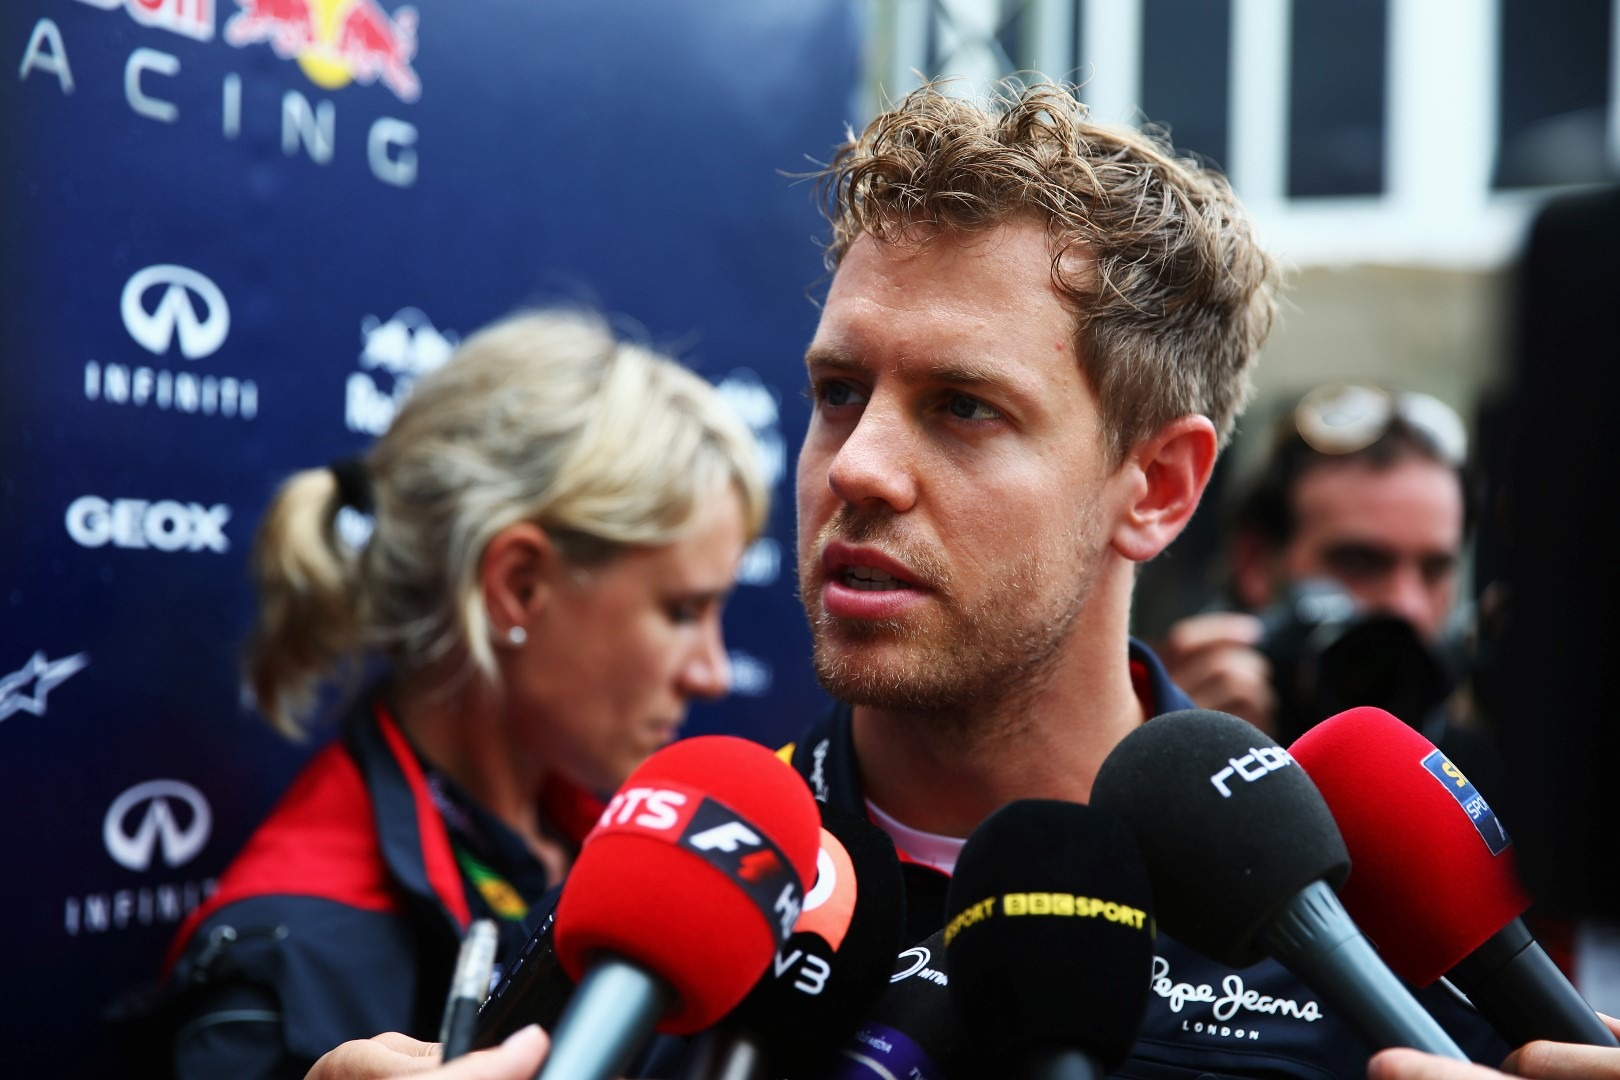 Sebastian Vettel urges to rethink F1 tyre plan